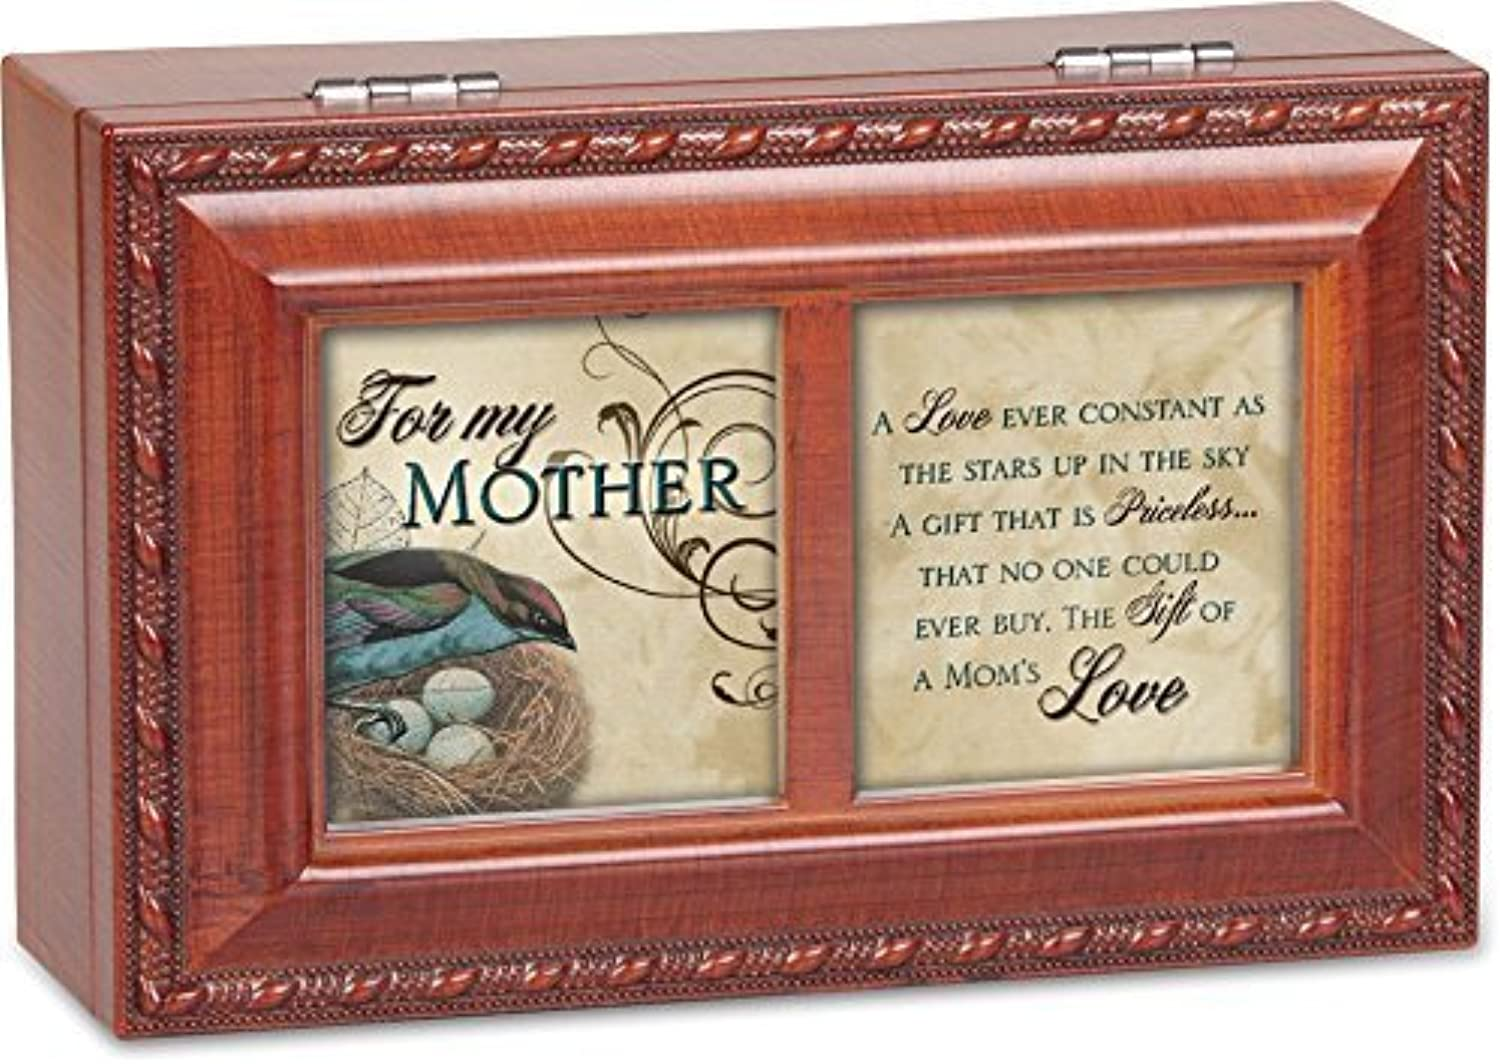 For My Mother Cottage Garden Rich Woodgrain Finish with Rope Trim Petite Jewelry Music Box  Plays Song Wind Beneath My Wings by Cottage Garden